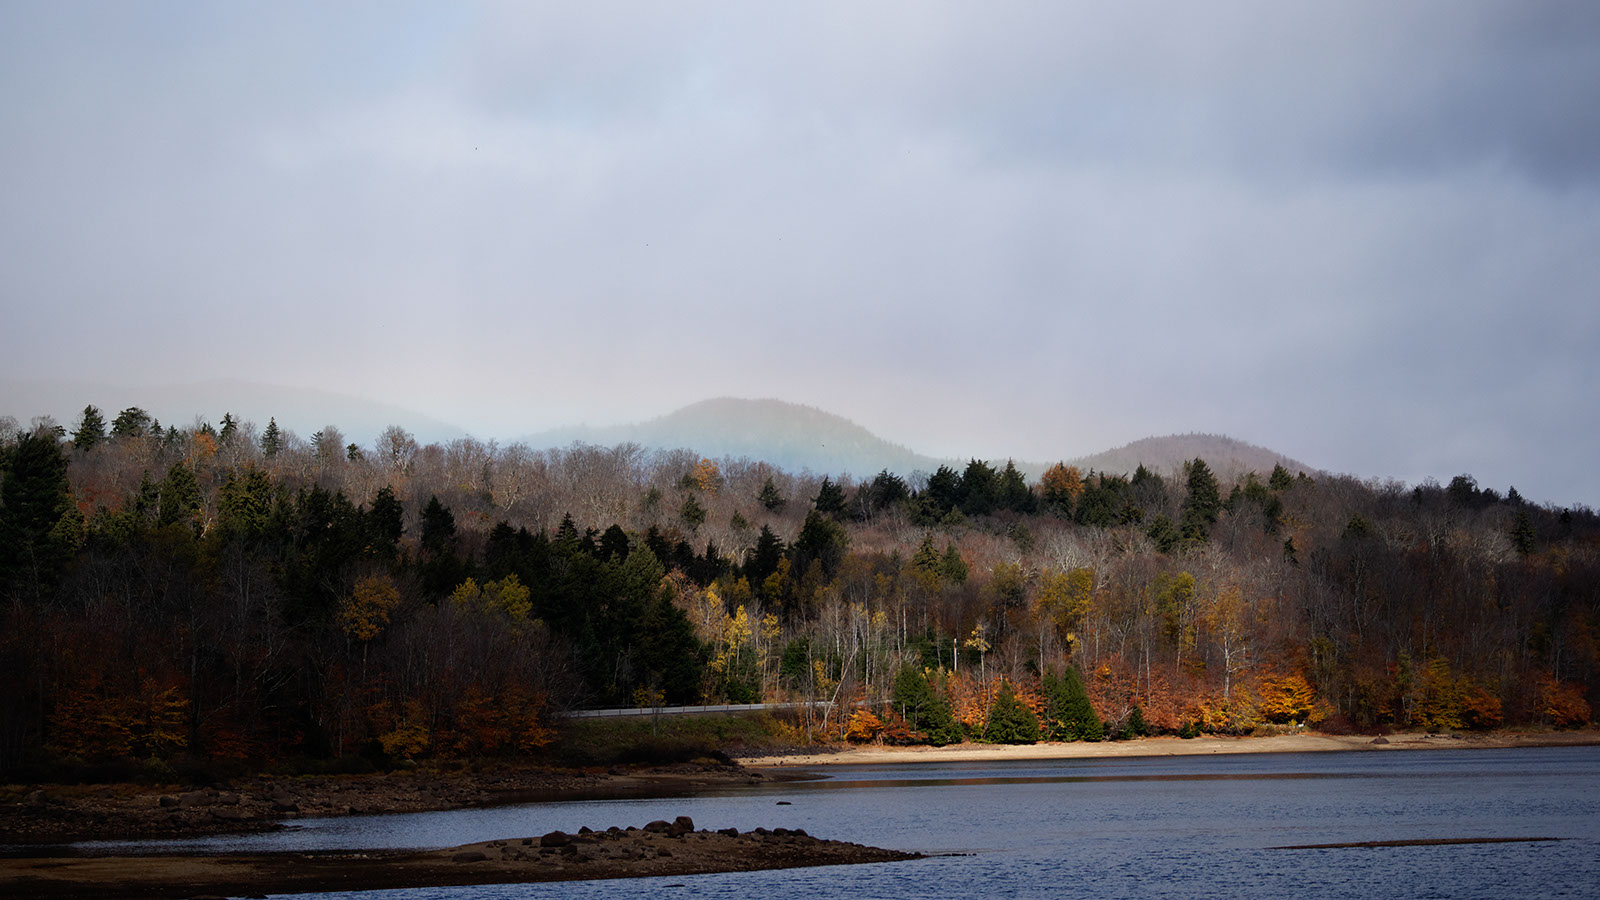 Fall in the Adirondacks, October 2012